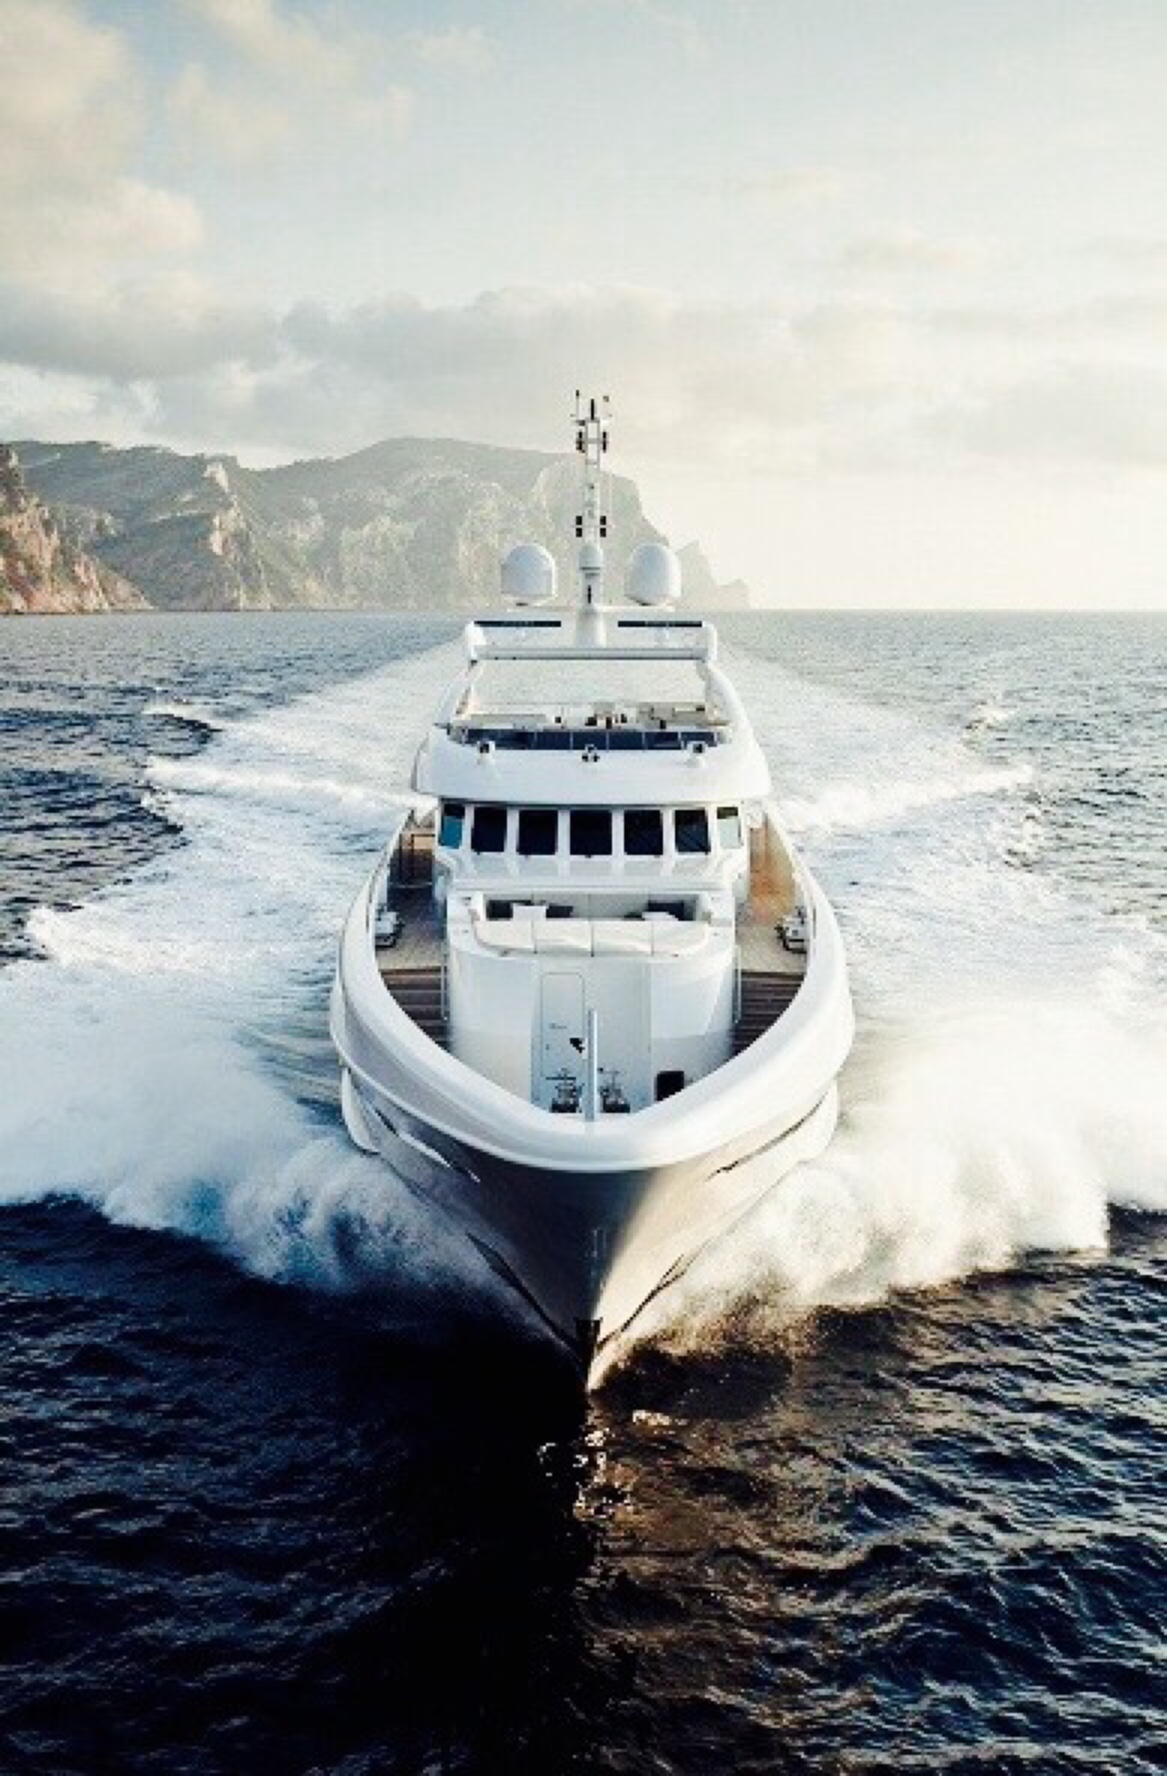 yacht white boat vessel sea vehicle water ocean ship fisherman travel